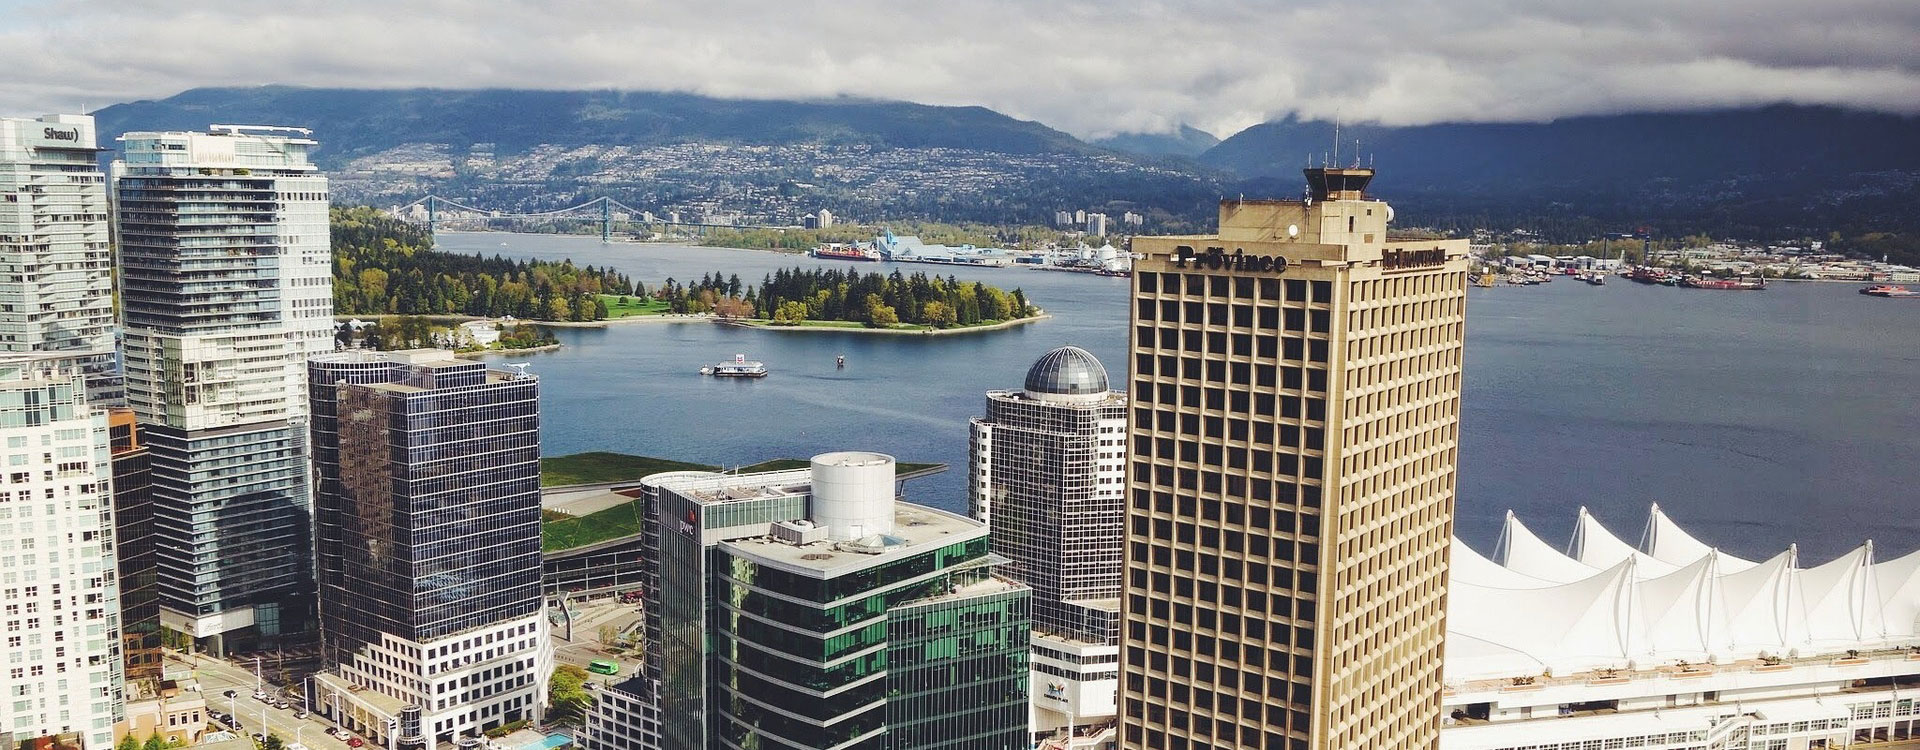 City and landscape photo of Vancouver, Canada.